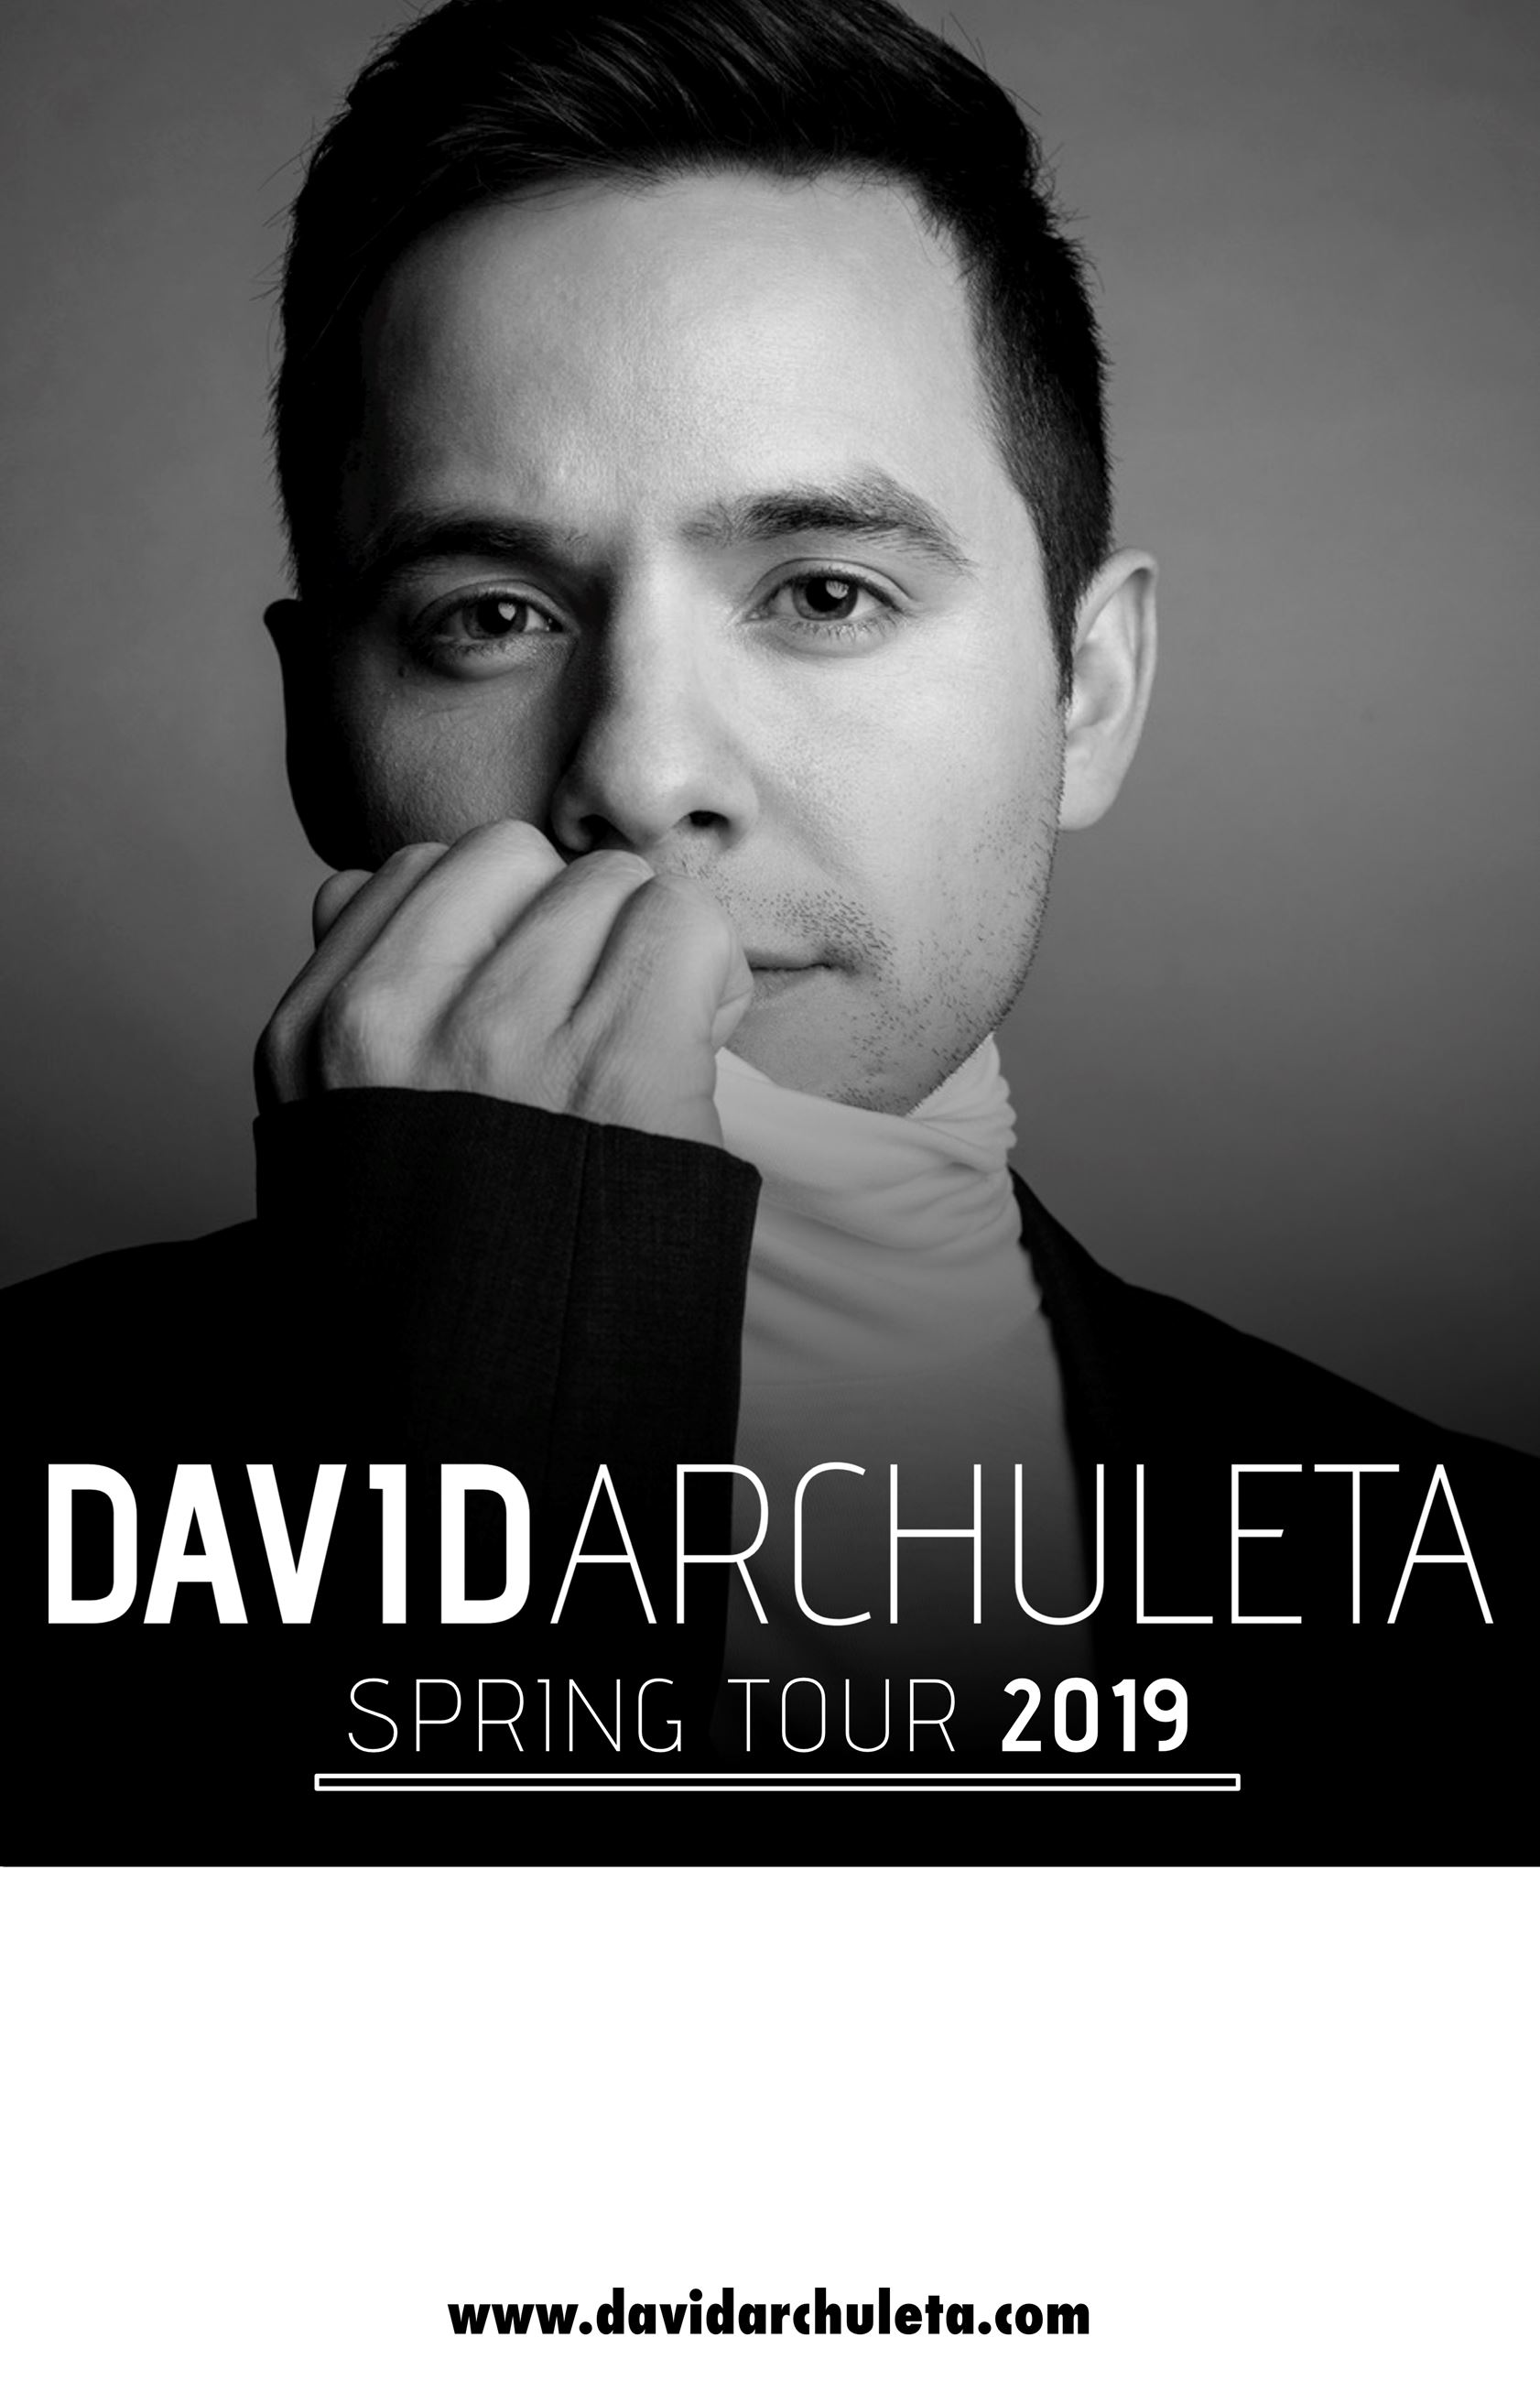 DAVID ARCHULETA - Admat, spring tour (FINAL)